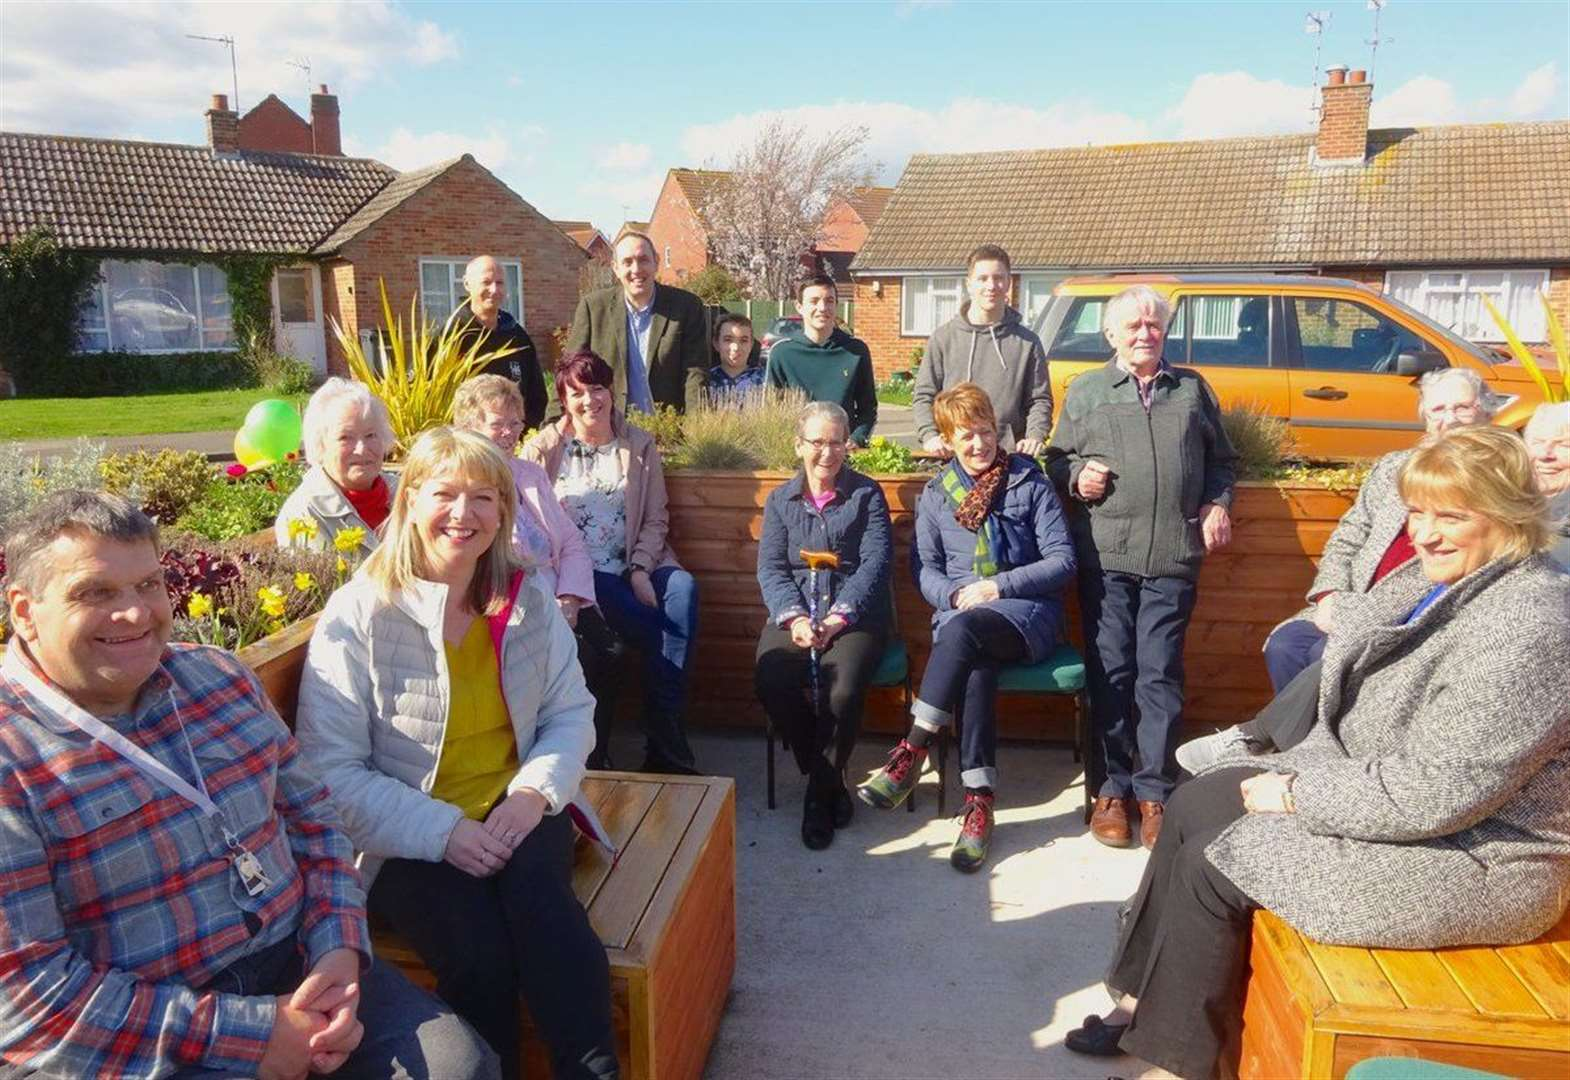 Bottesford's Friendly Bench awarded £240,000 in lottery funding